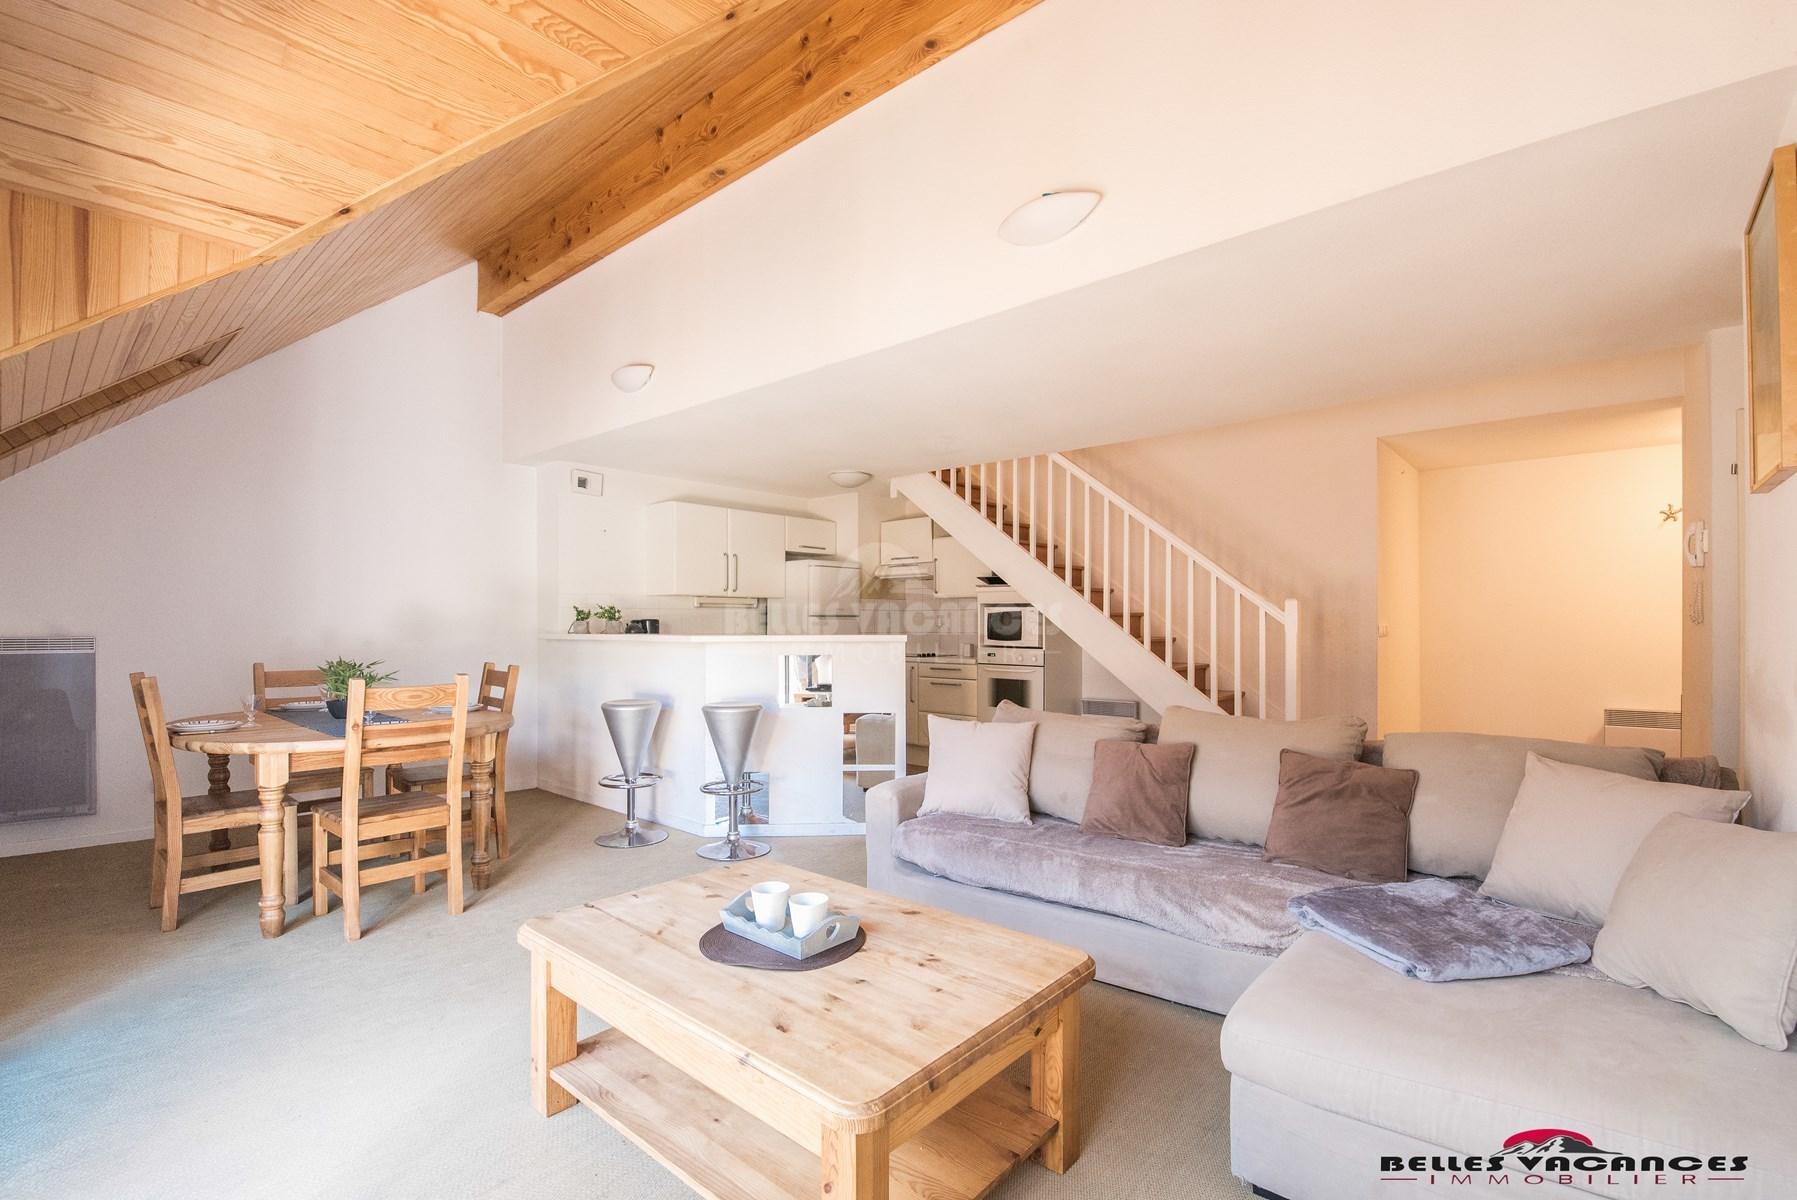 Location Prestige Vacance Location Type 4 9 Personnes Saint Lary 65170 Grhotel304